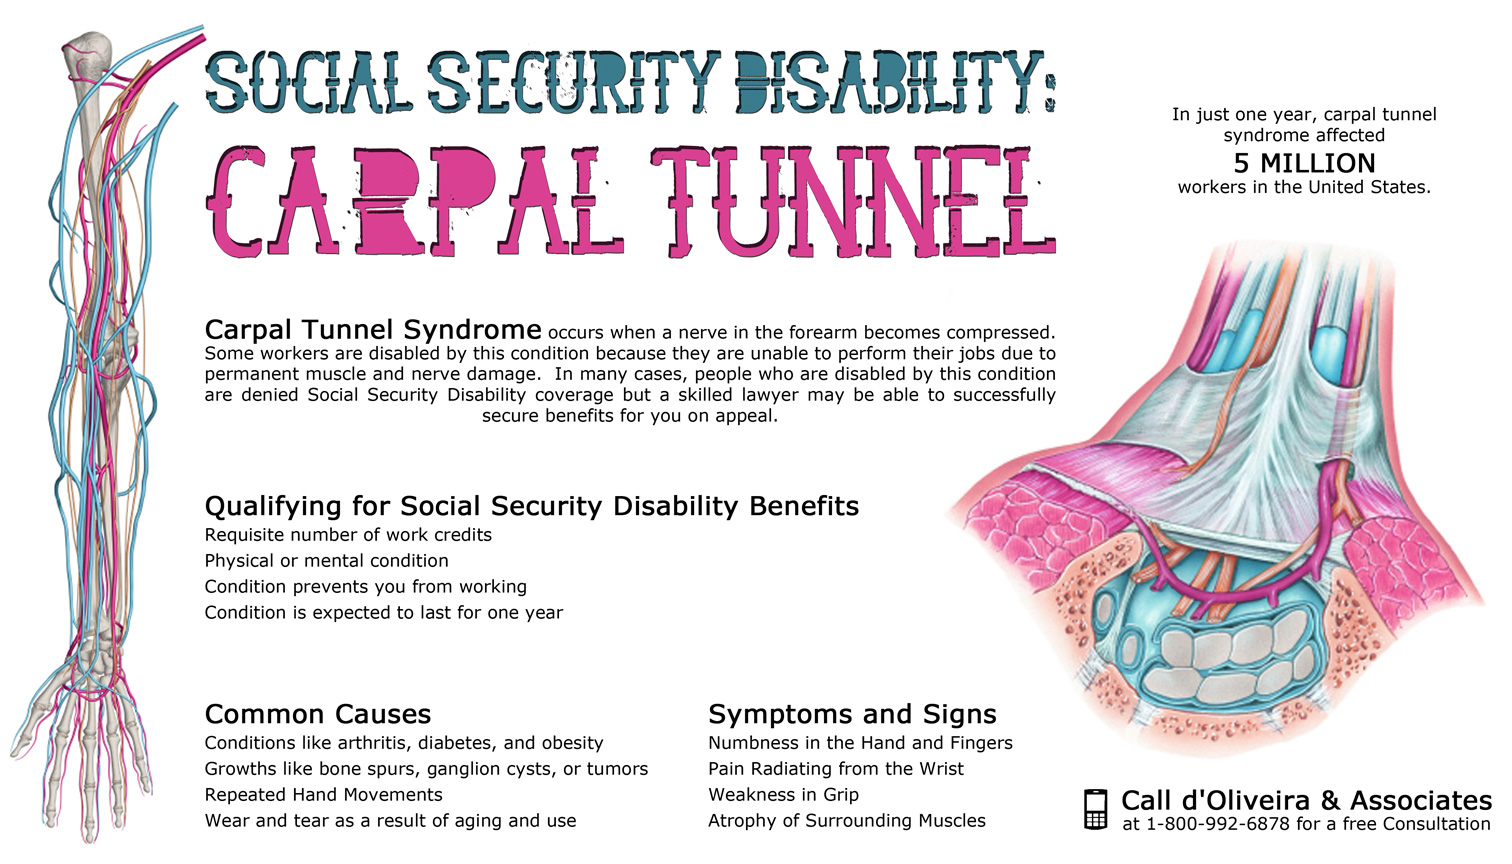 Social Security Disability with Carpal Tunnel Syndrome Infographic